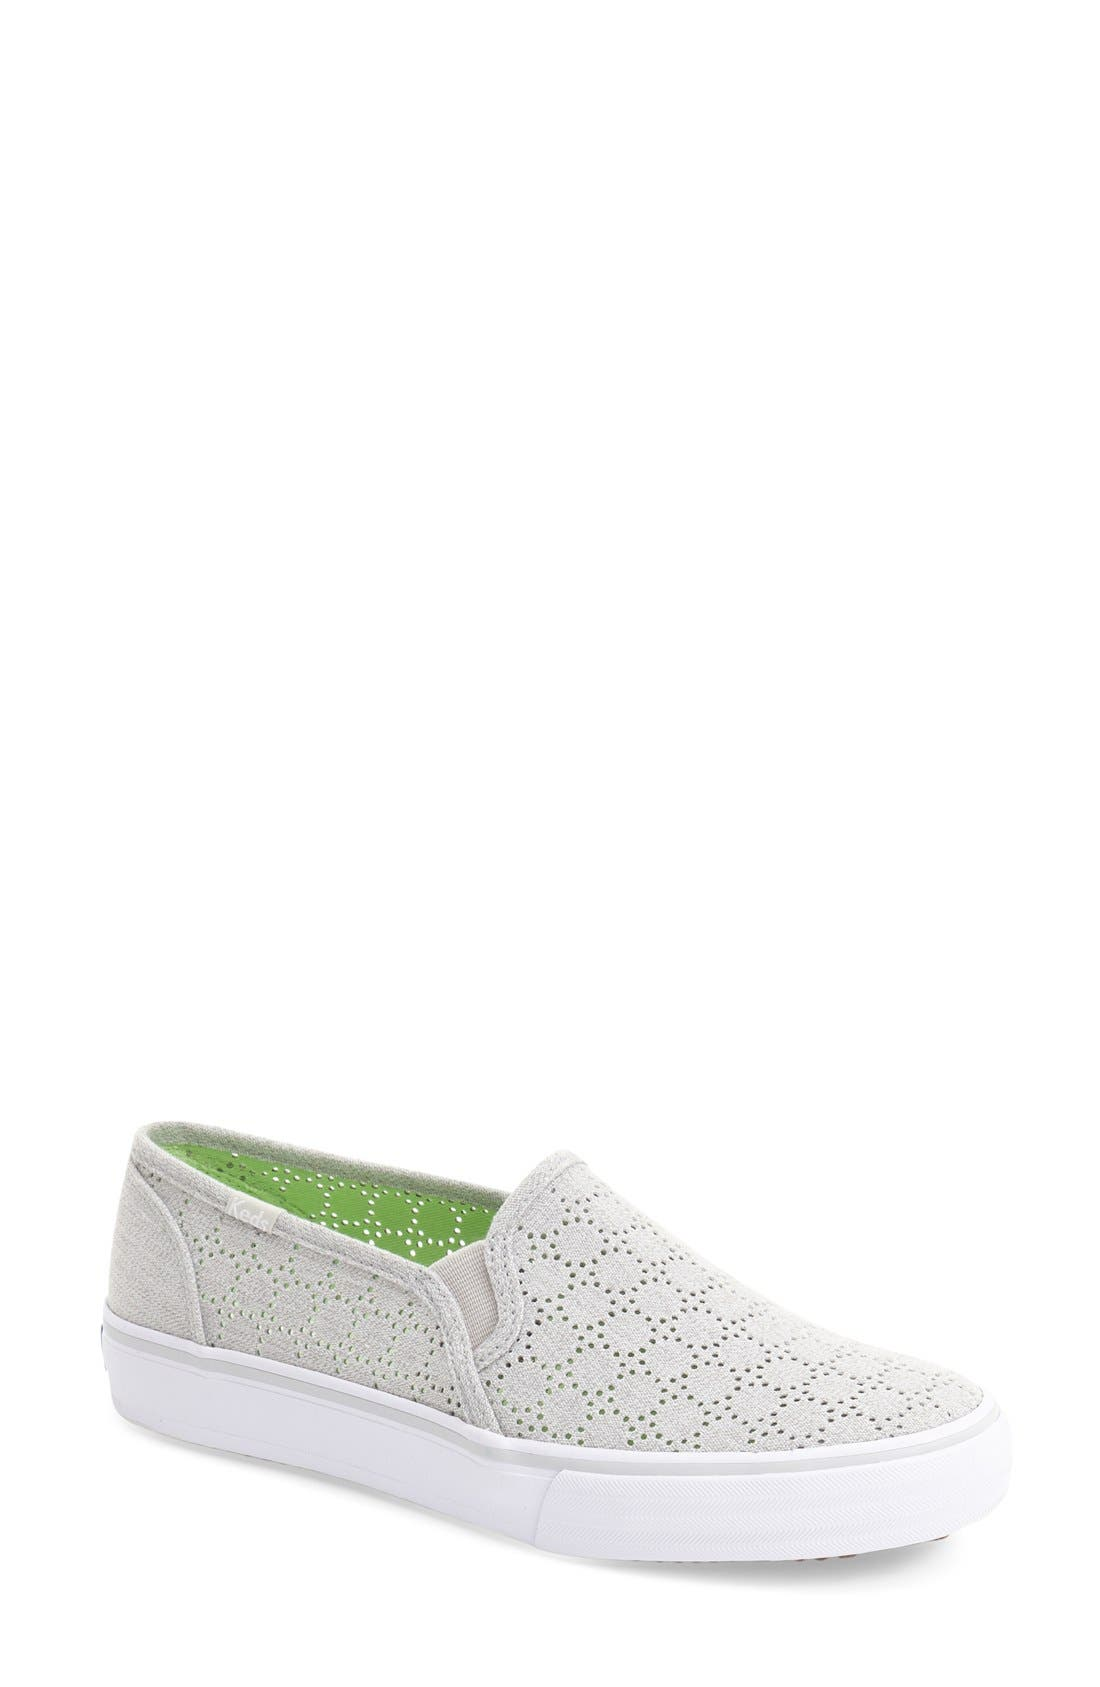 Main Image - Keds® 'Double Decker' Perforated Slip-On Sneaker (Women)